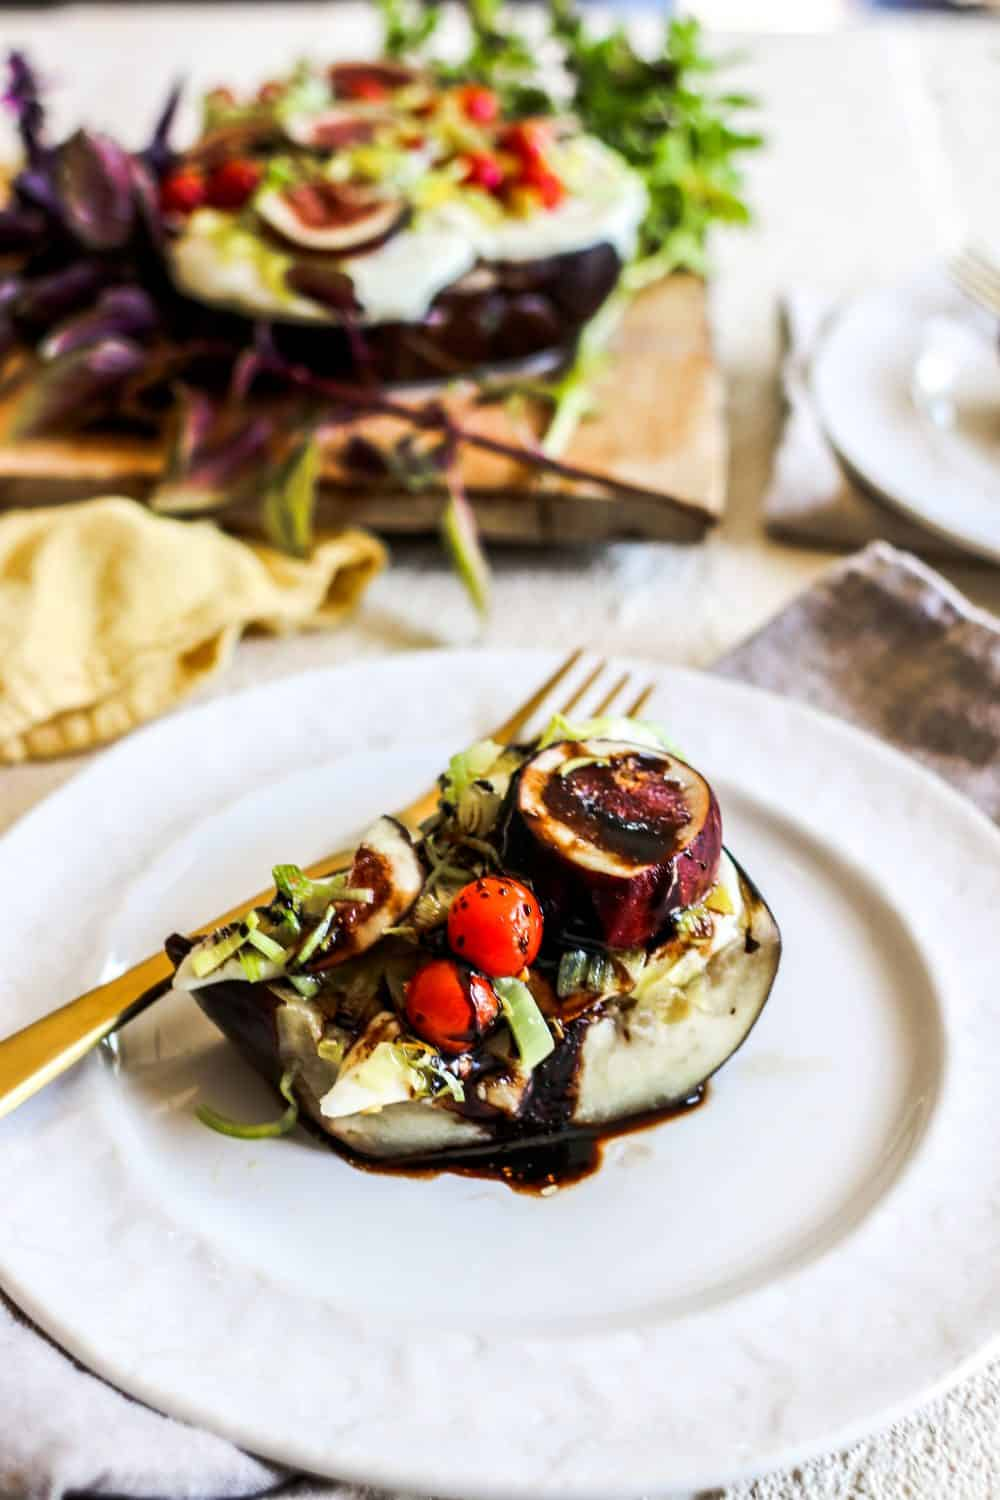 Slices of Baked Eggplant with California Figs and Leeks drizzled with balsamic reduction.